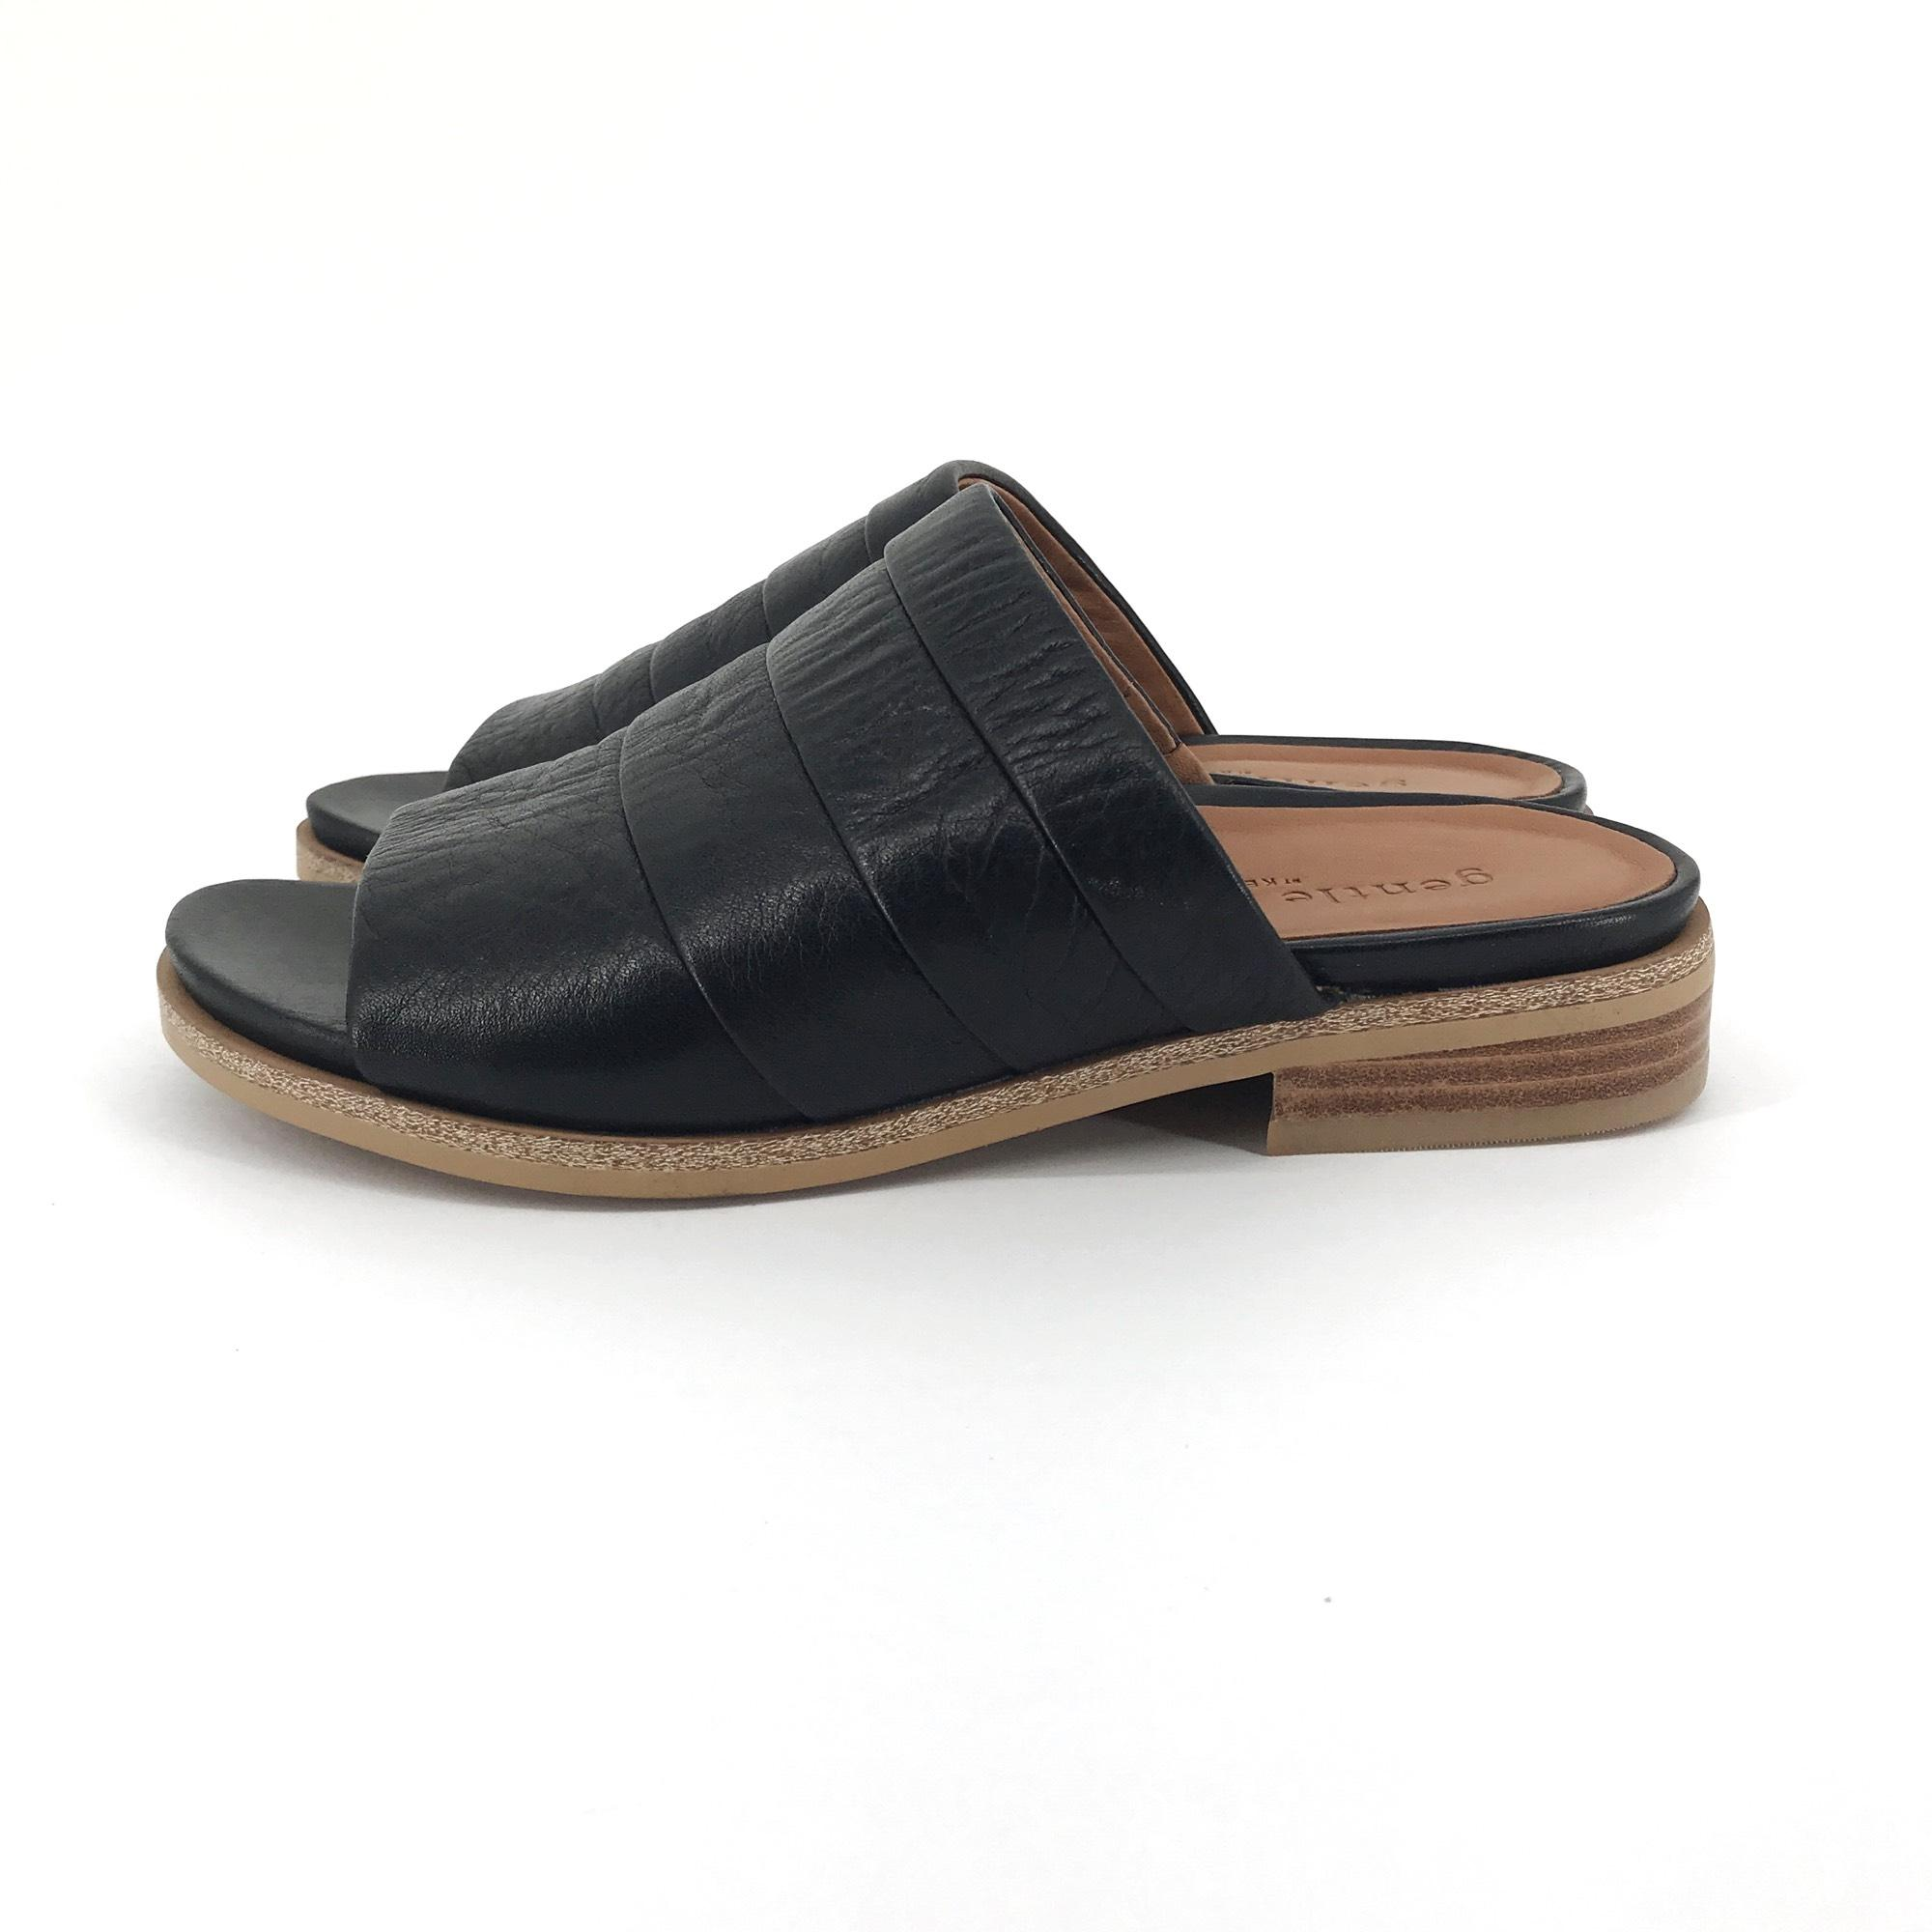 Gentle Souls Black Gayle Leather Slide Sandals Size US 6.5 ...